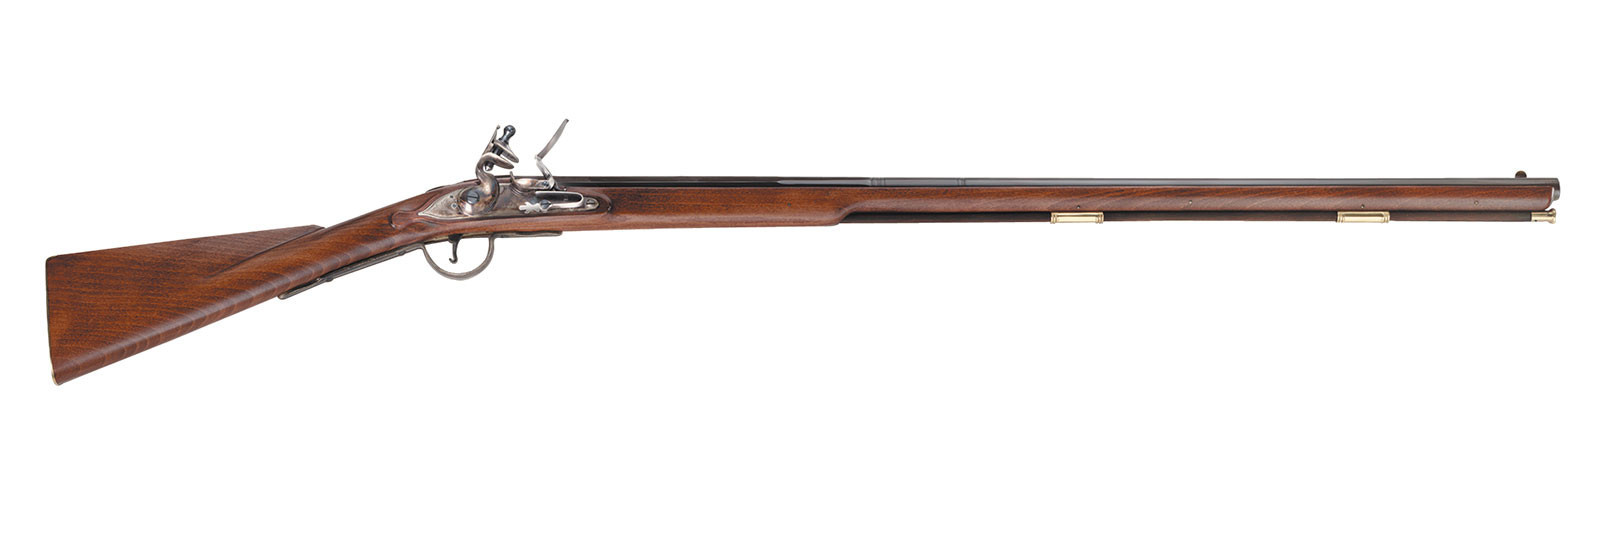 Fucile Indian Trade Musket